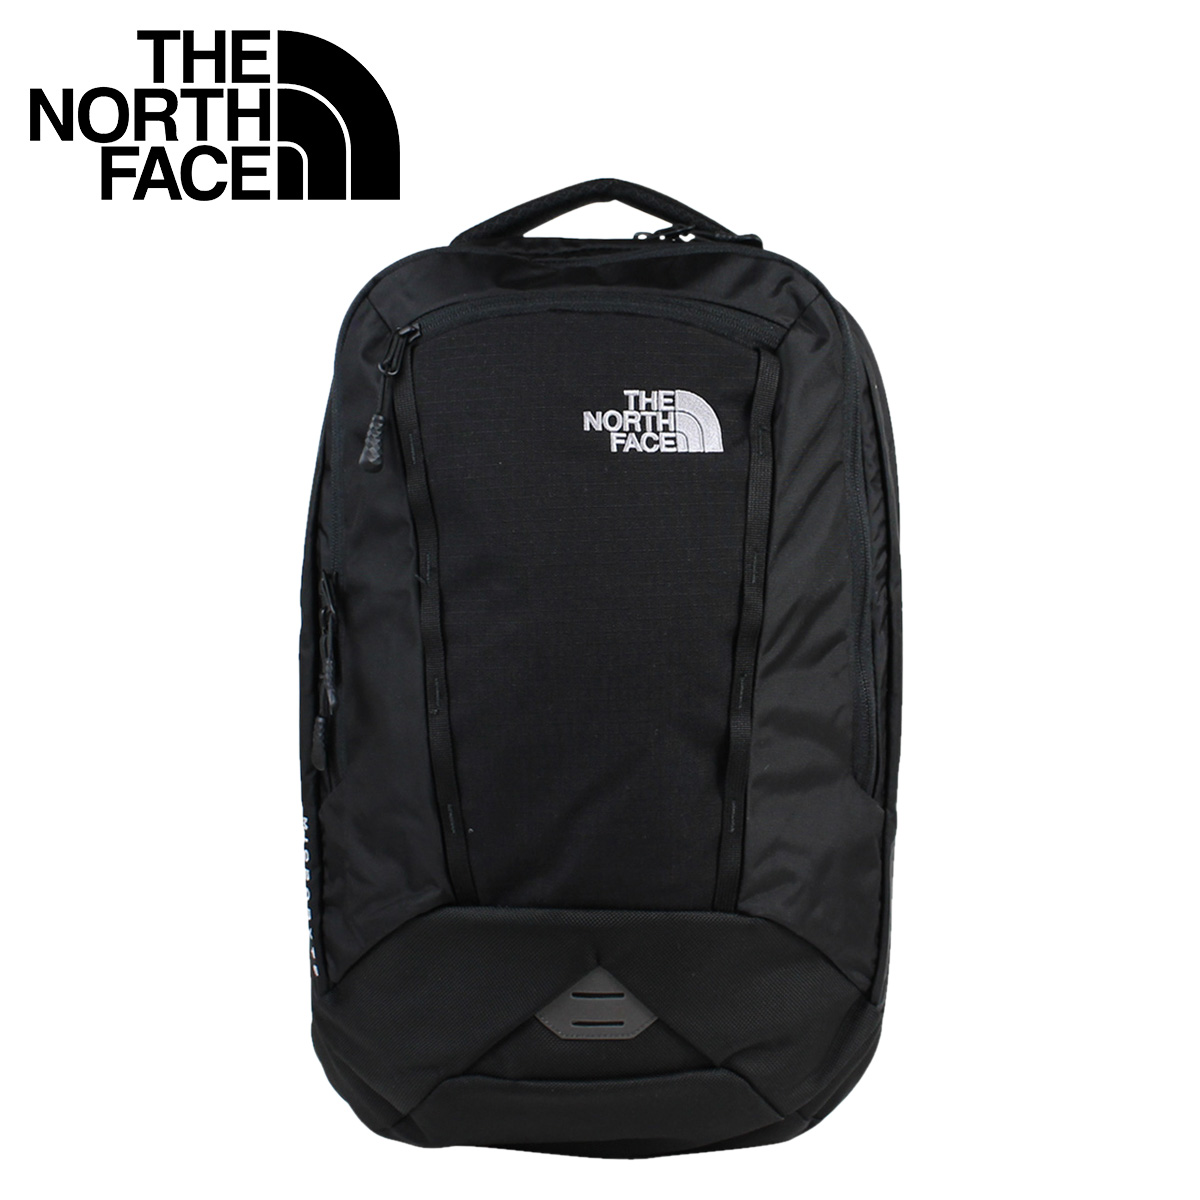 f2bc1a6b4 THE NORTH FACE North Face rucksack backpack MICROBYTE BACKPACK CHK5 men gap  Dis